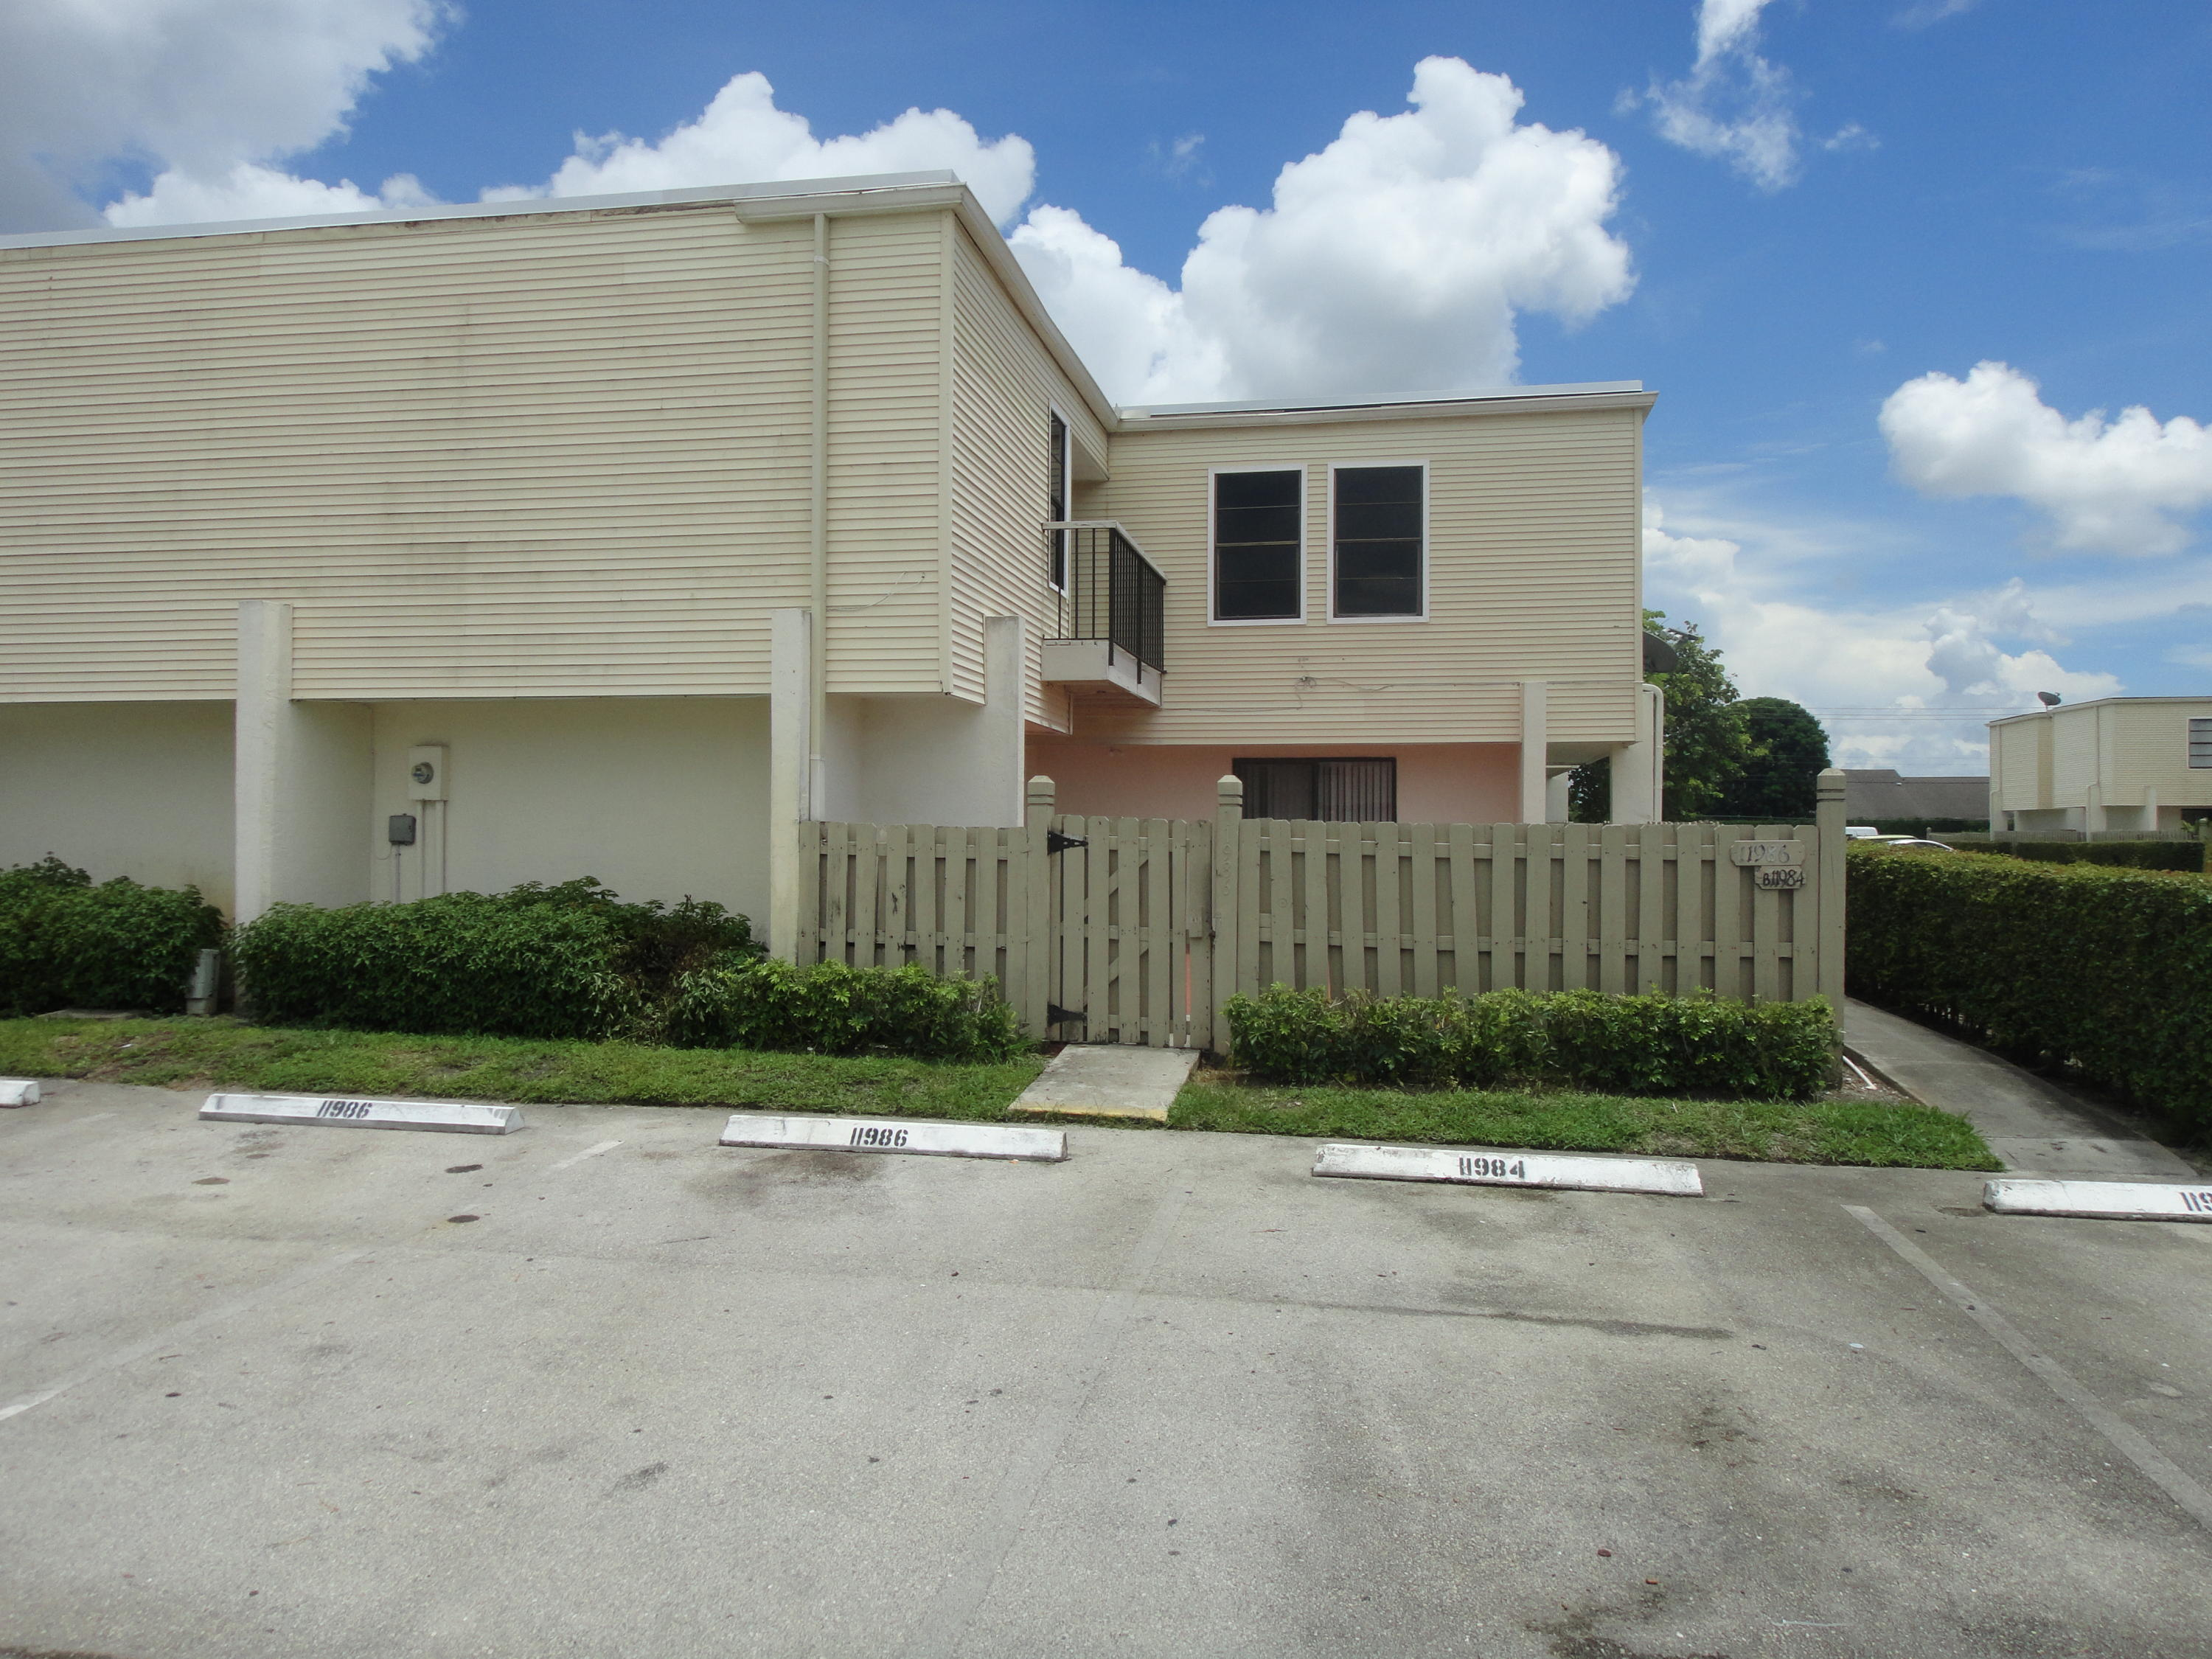 11986 Shakerwood Ln, Wellington, FL, 33414